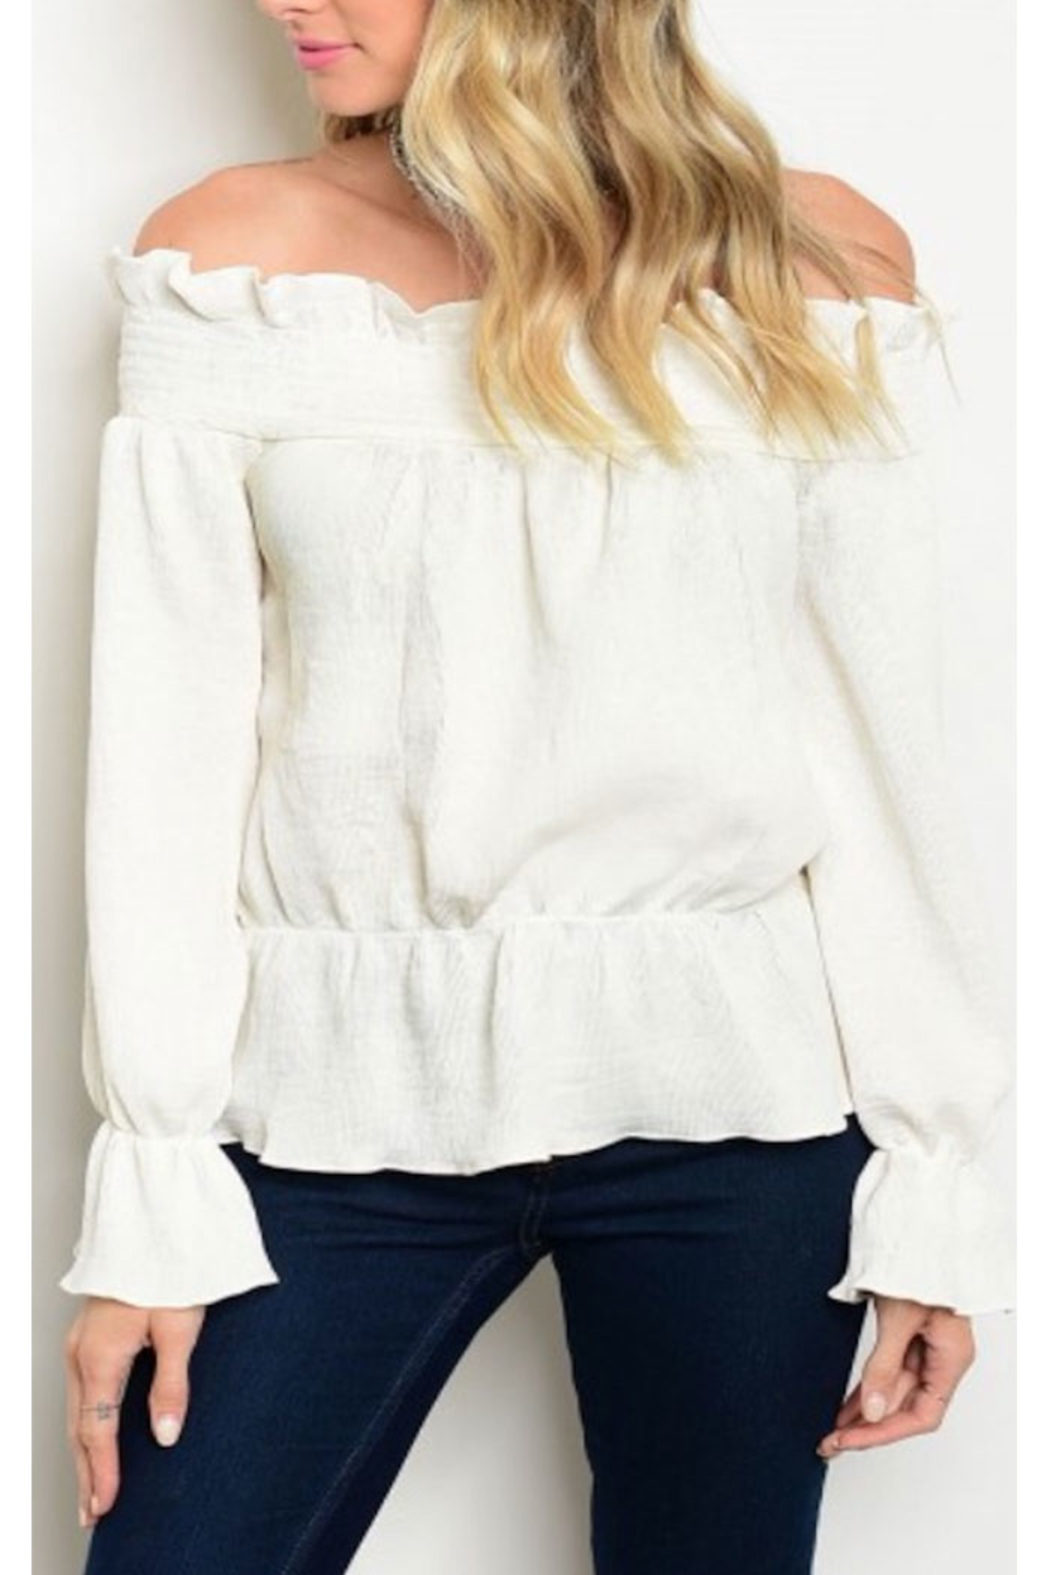 Tracie's White Ruffle Off The Shoulder Top - Main Image